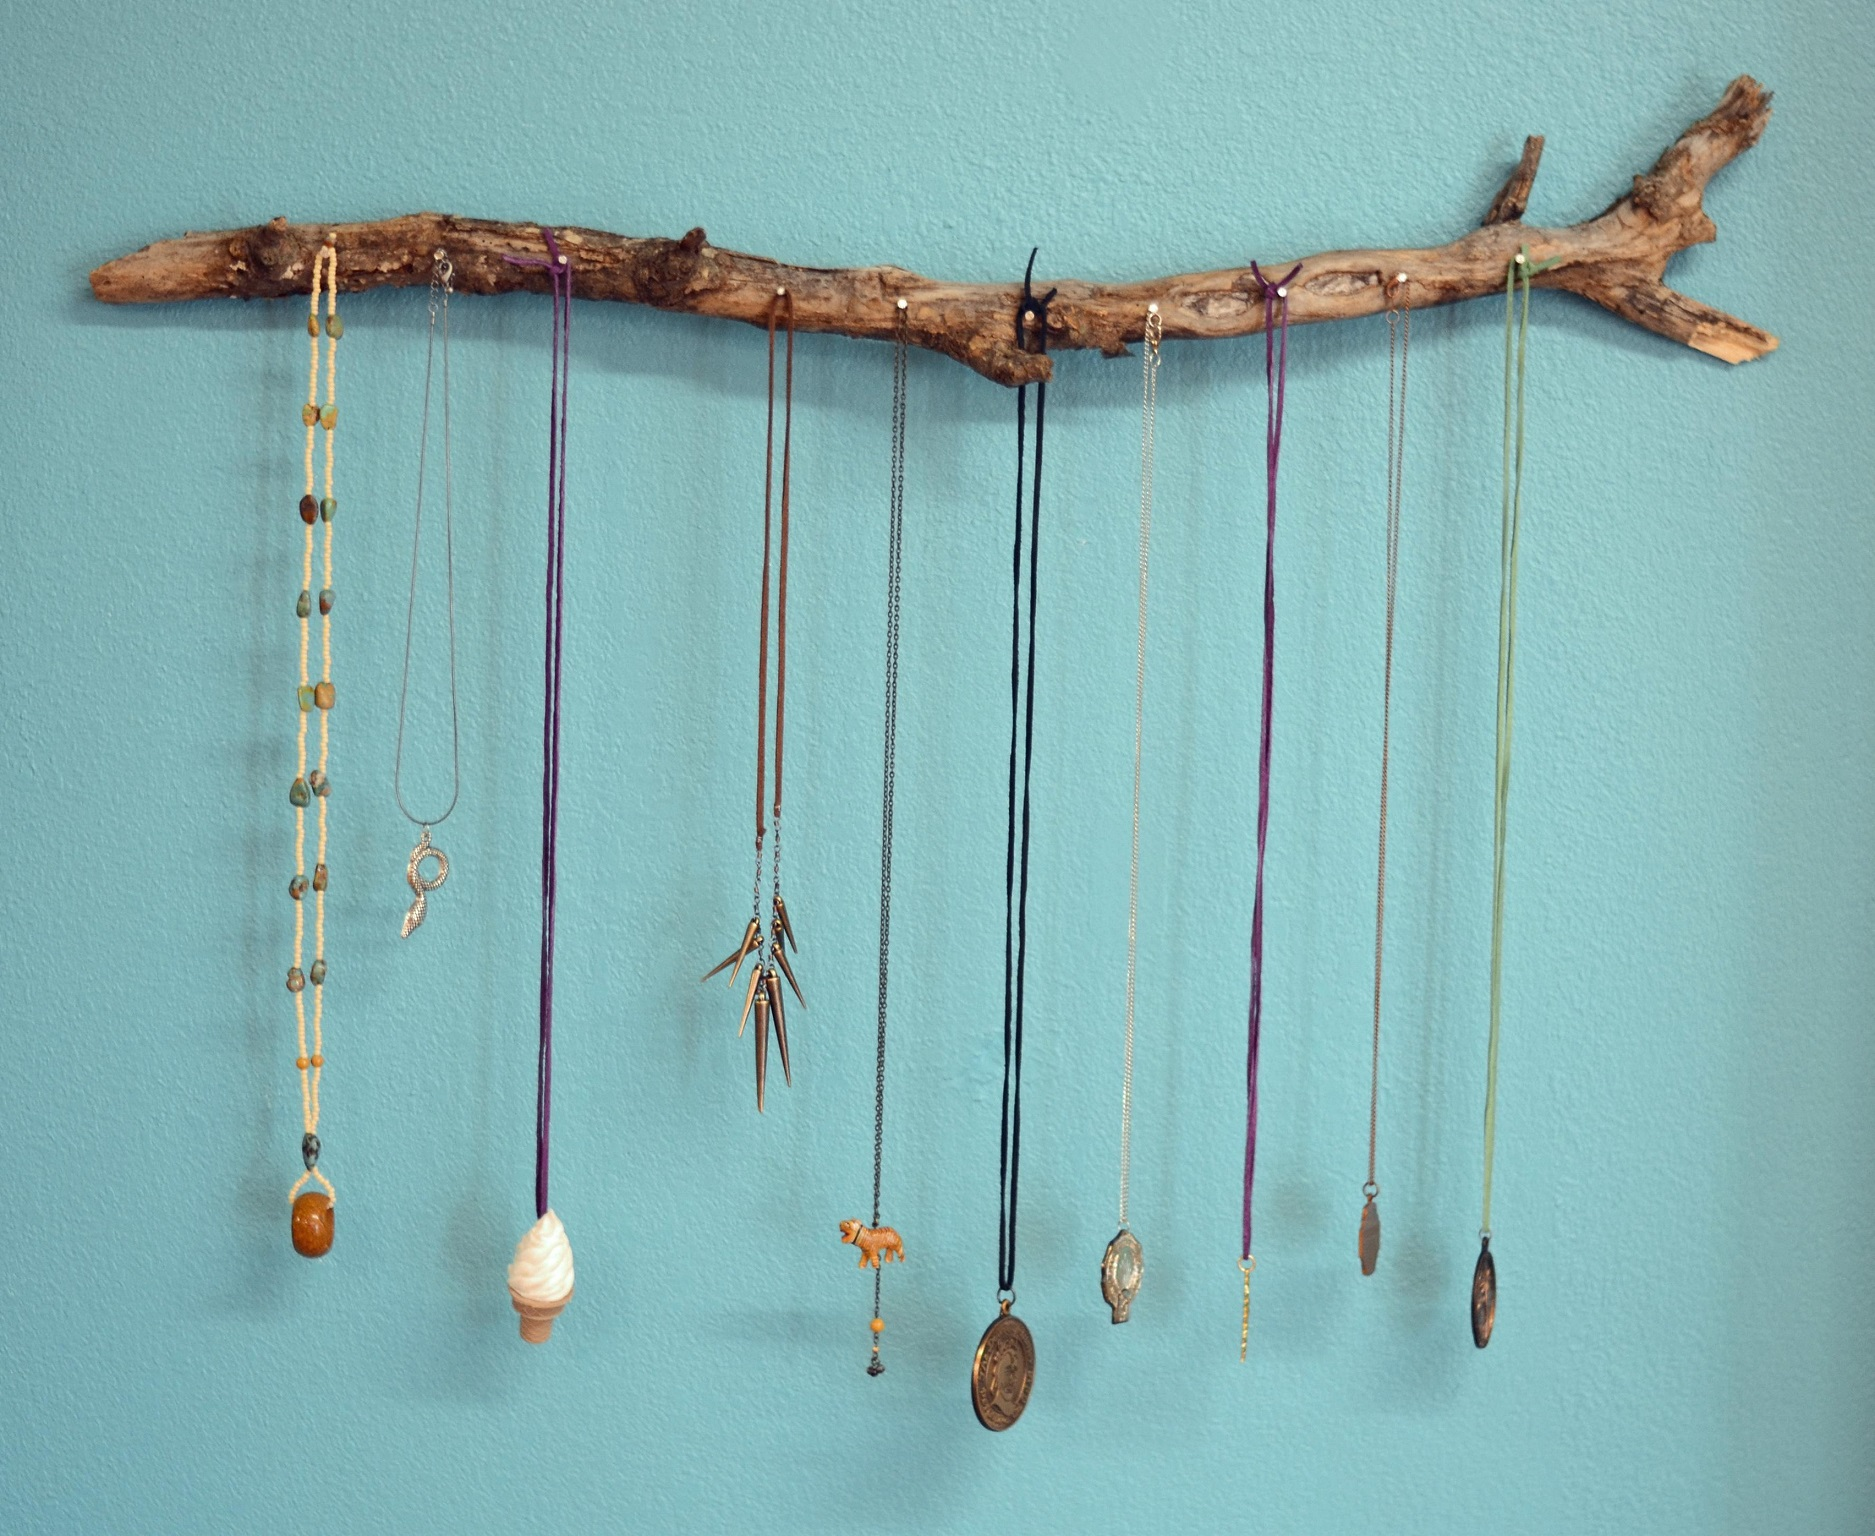 So easy to make a jewelry necklace holder in a creative way, by putting a few pins on a stick. You can choose a stick which has a twisted shape.